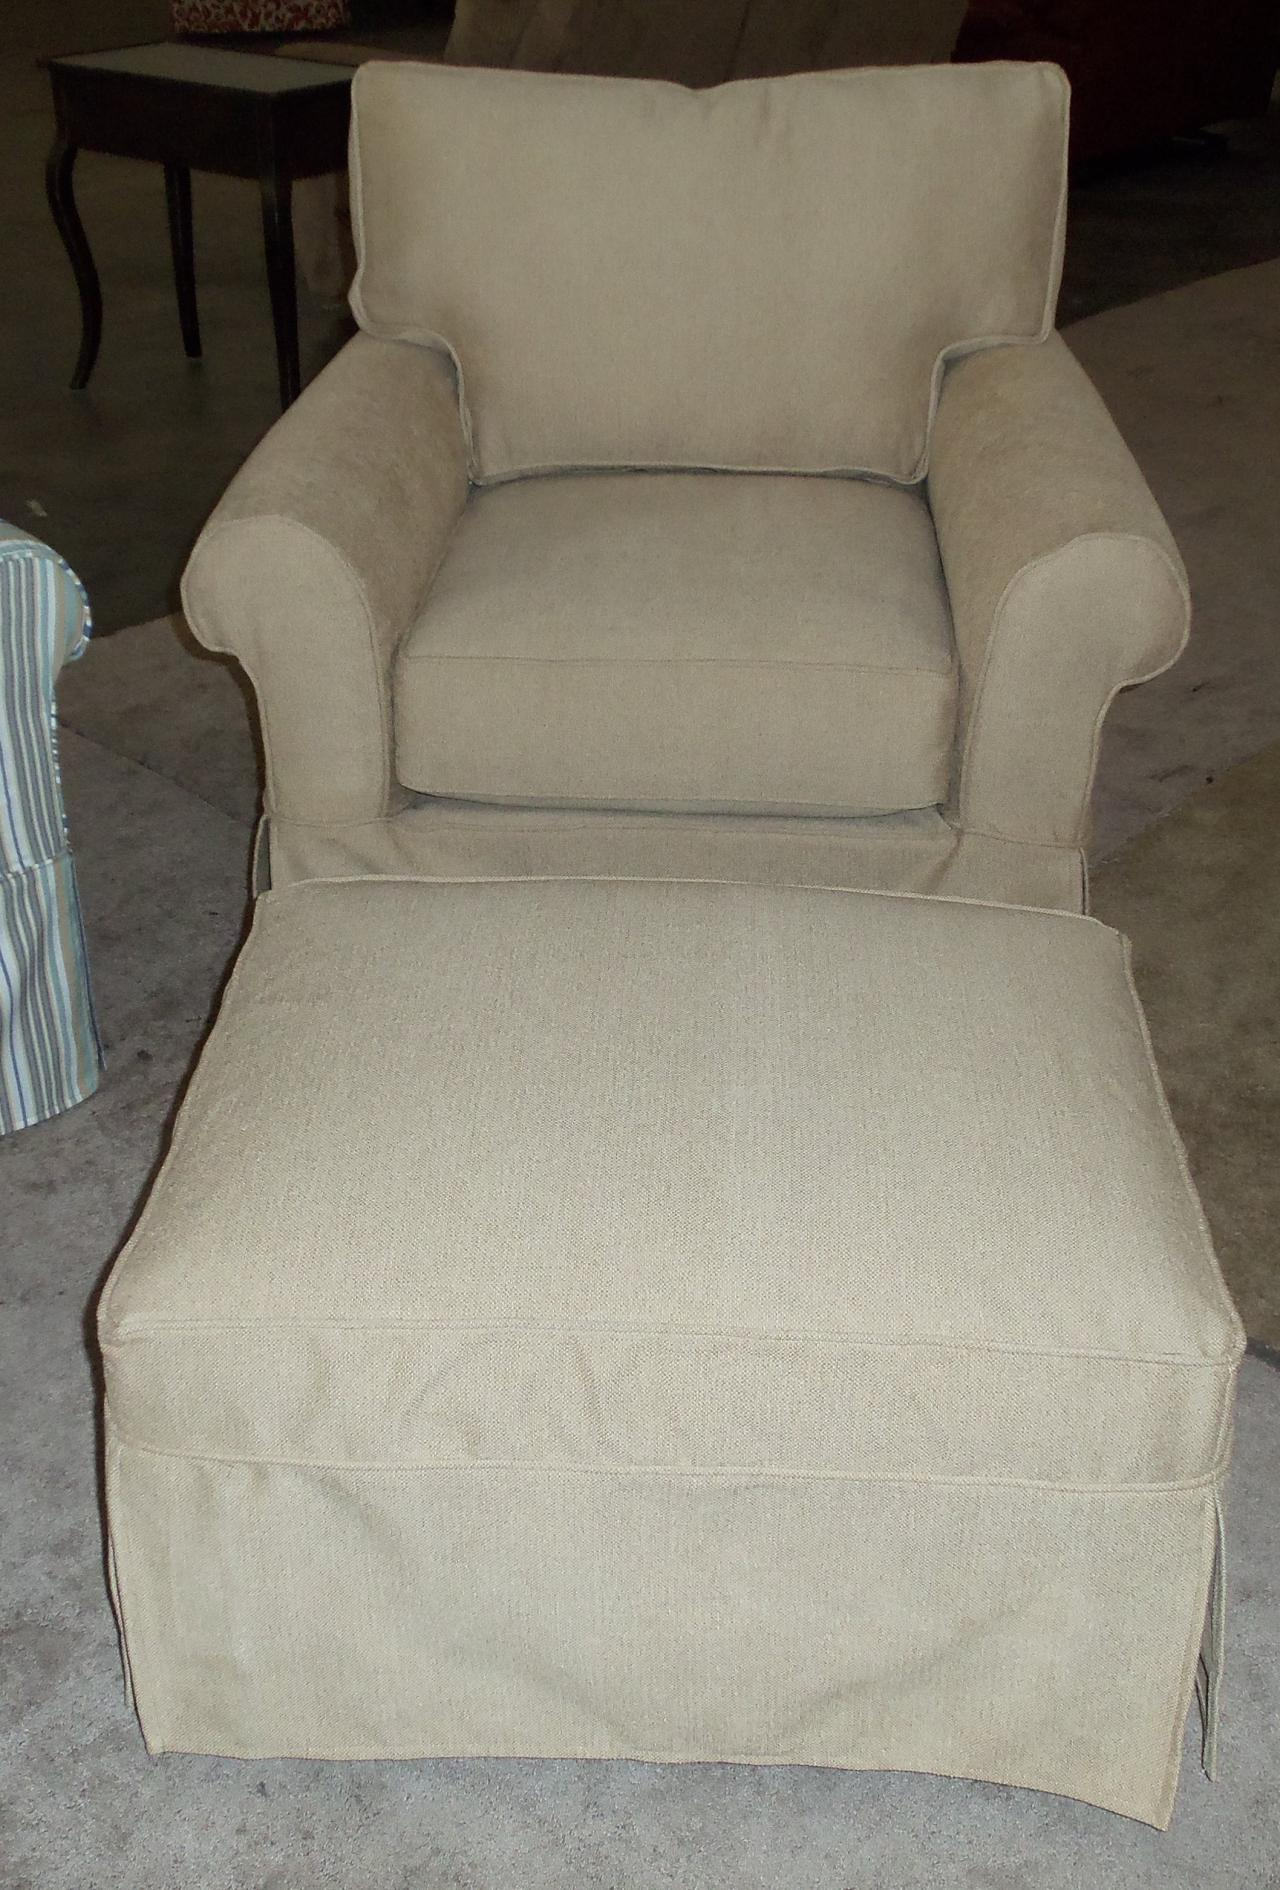 Strange Barnett Furniture Rowe Furniturenantucket Caraccident5 Cool Chair Designs And Ideas Caraccident5Info